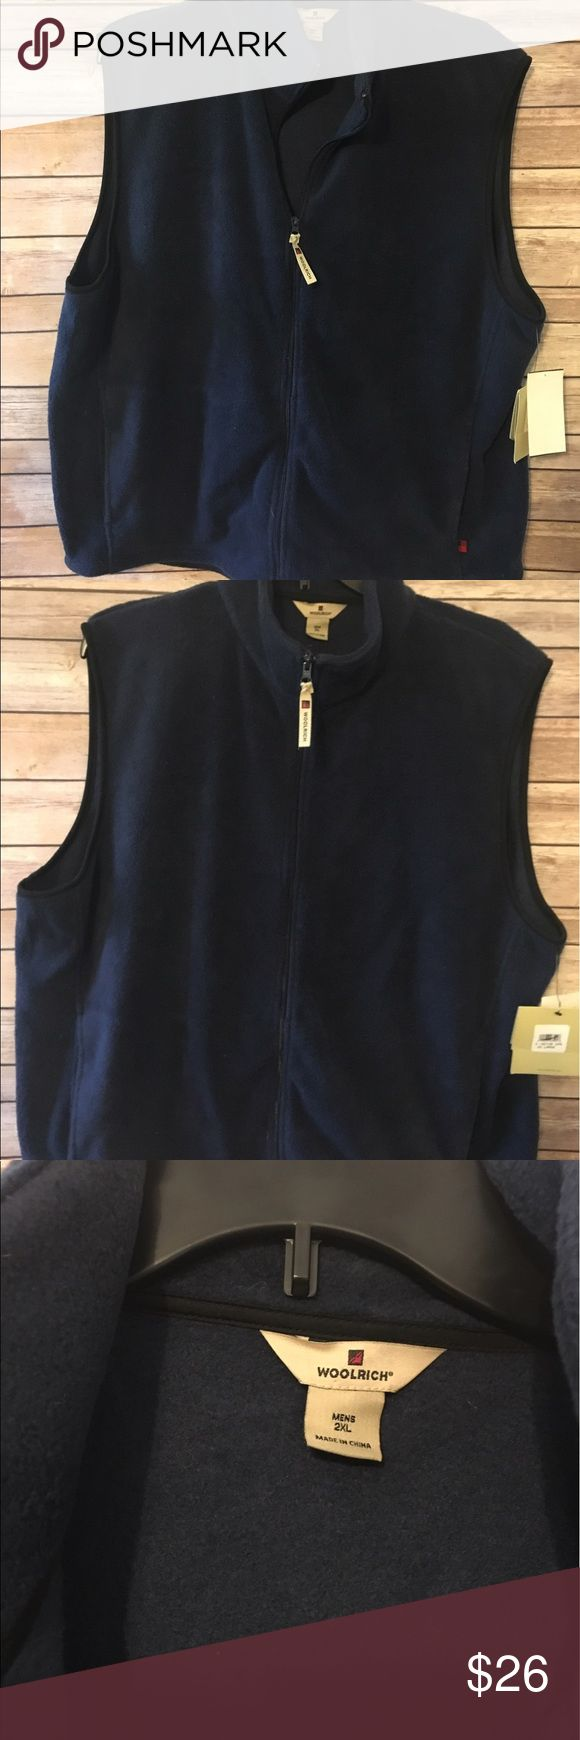 Men's woolrich fleece vest new with tags Navy blue zip up woolrich fleece vest size 2xL new with tags Woolrich Sweaters V-Necks